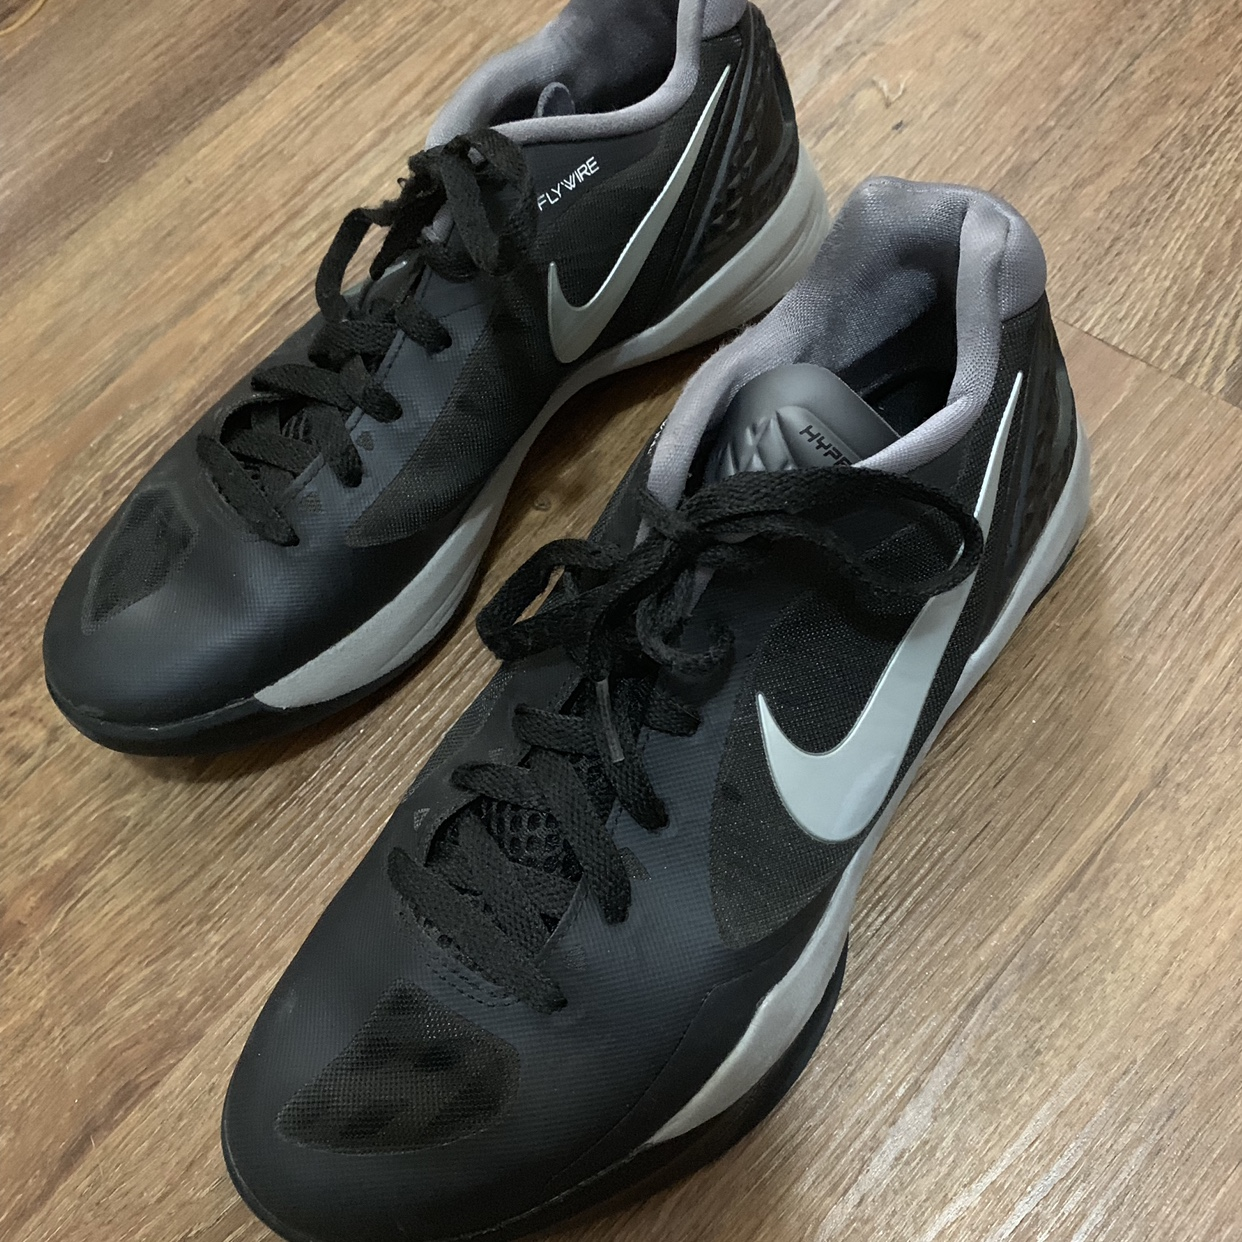 Nike flywire volleyball shoes women's